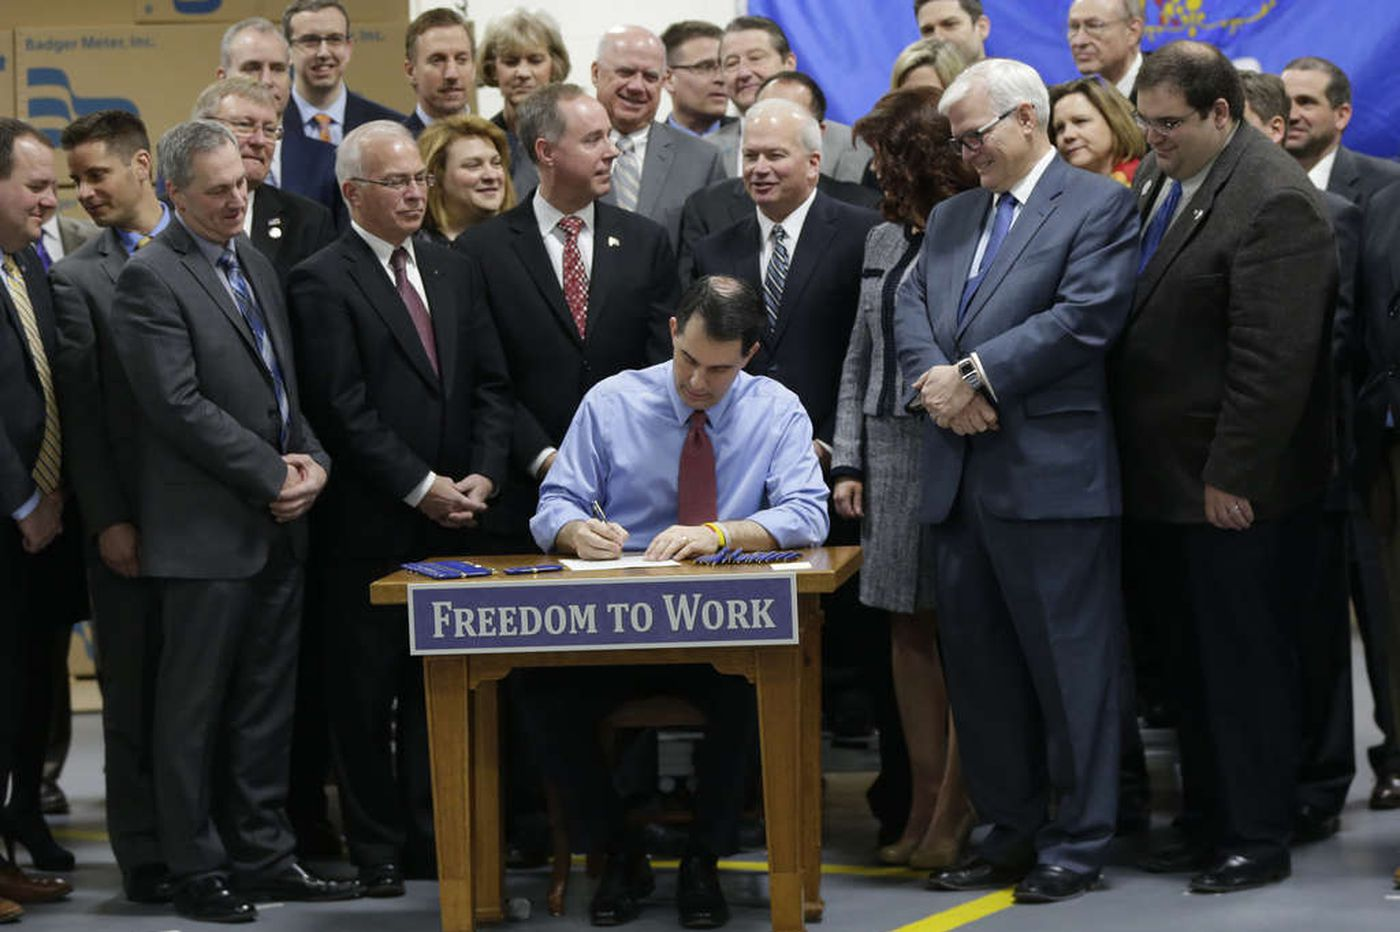 Wisconsin becomes right-to-work state